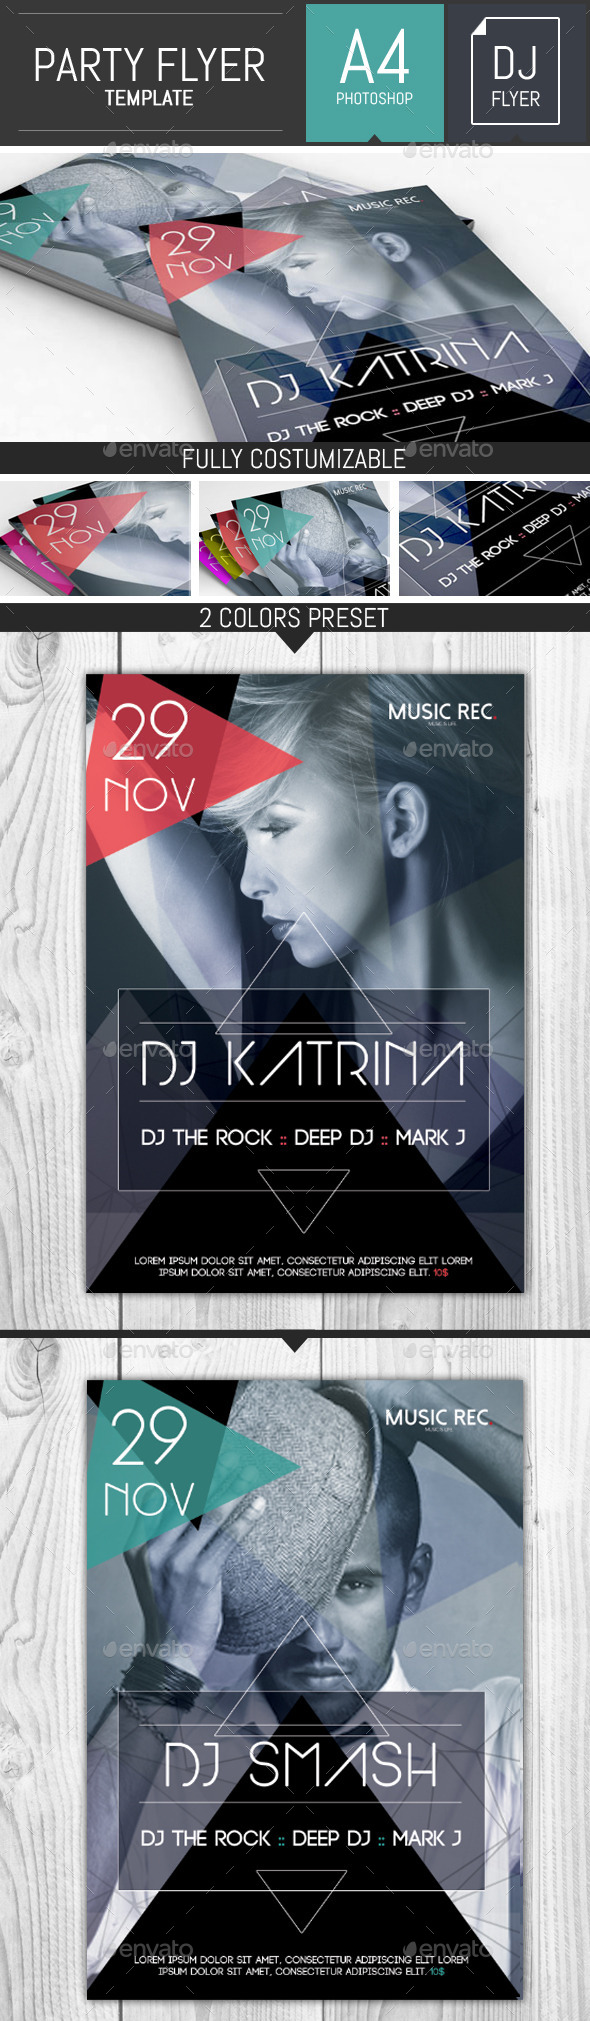 Abstract Party Dj Flyer Template